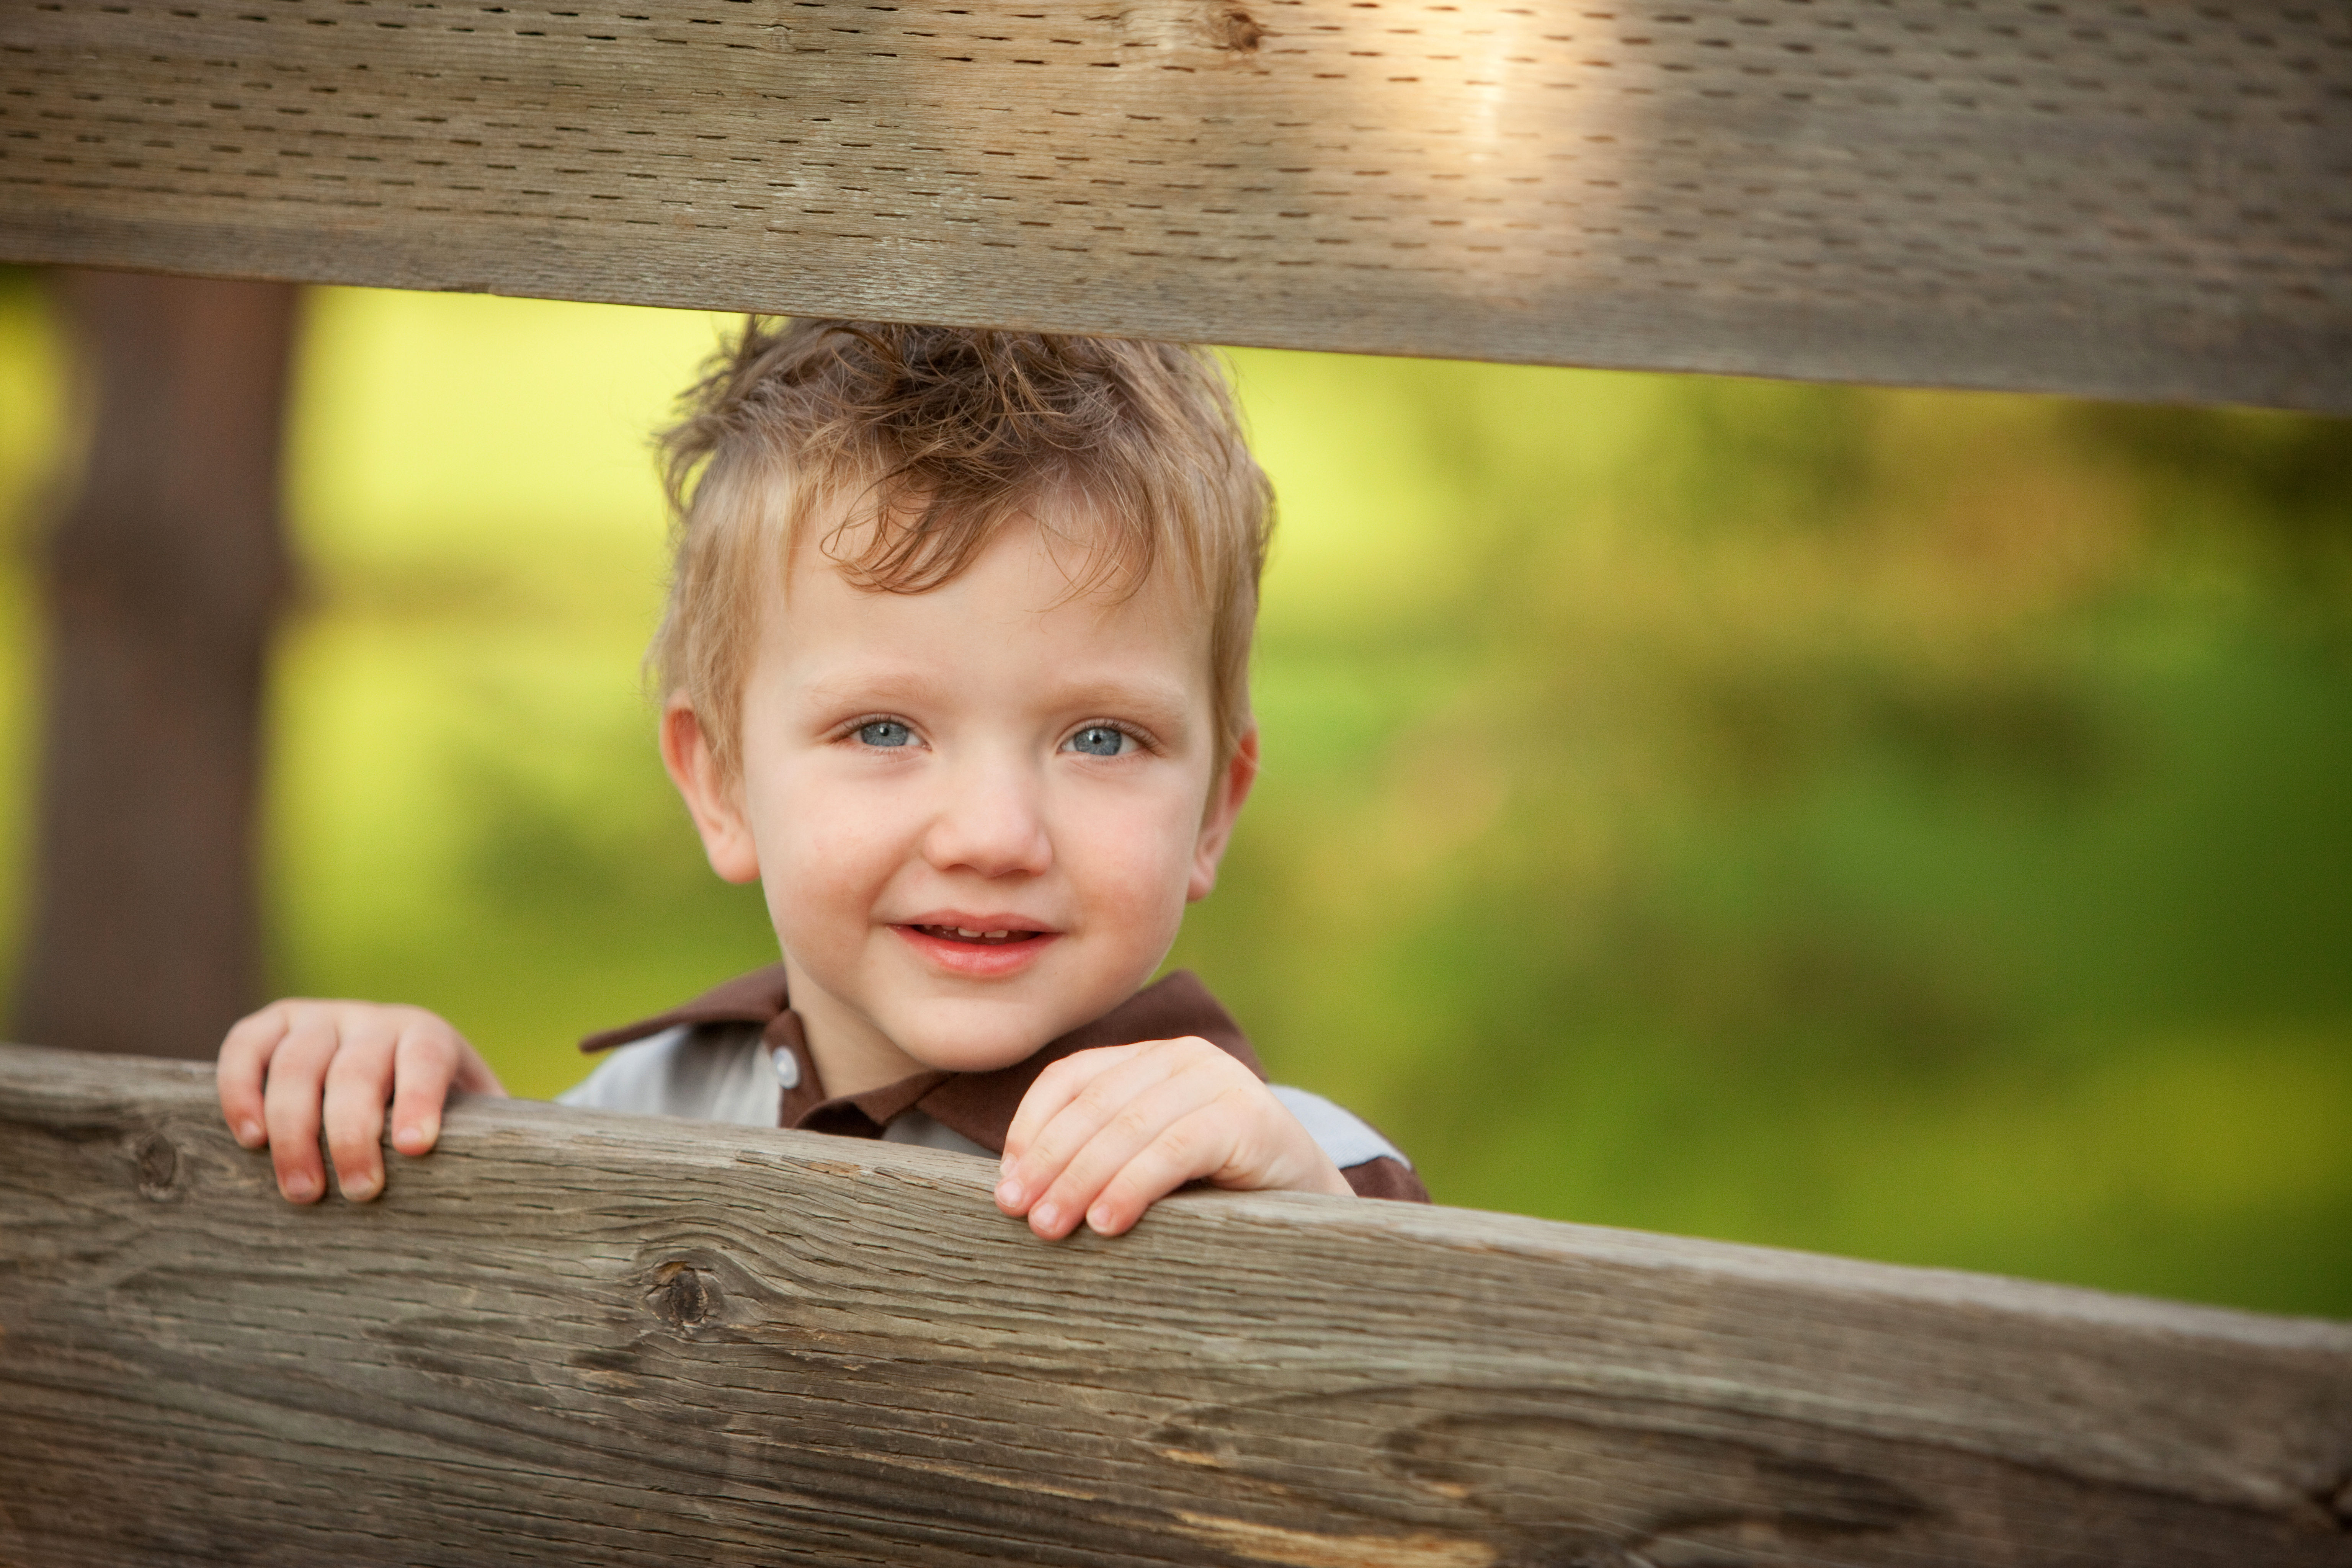 Smiling toddler looking through a wooden fence